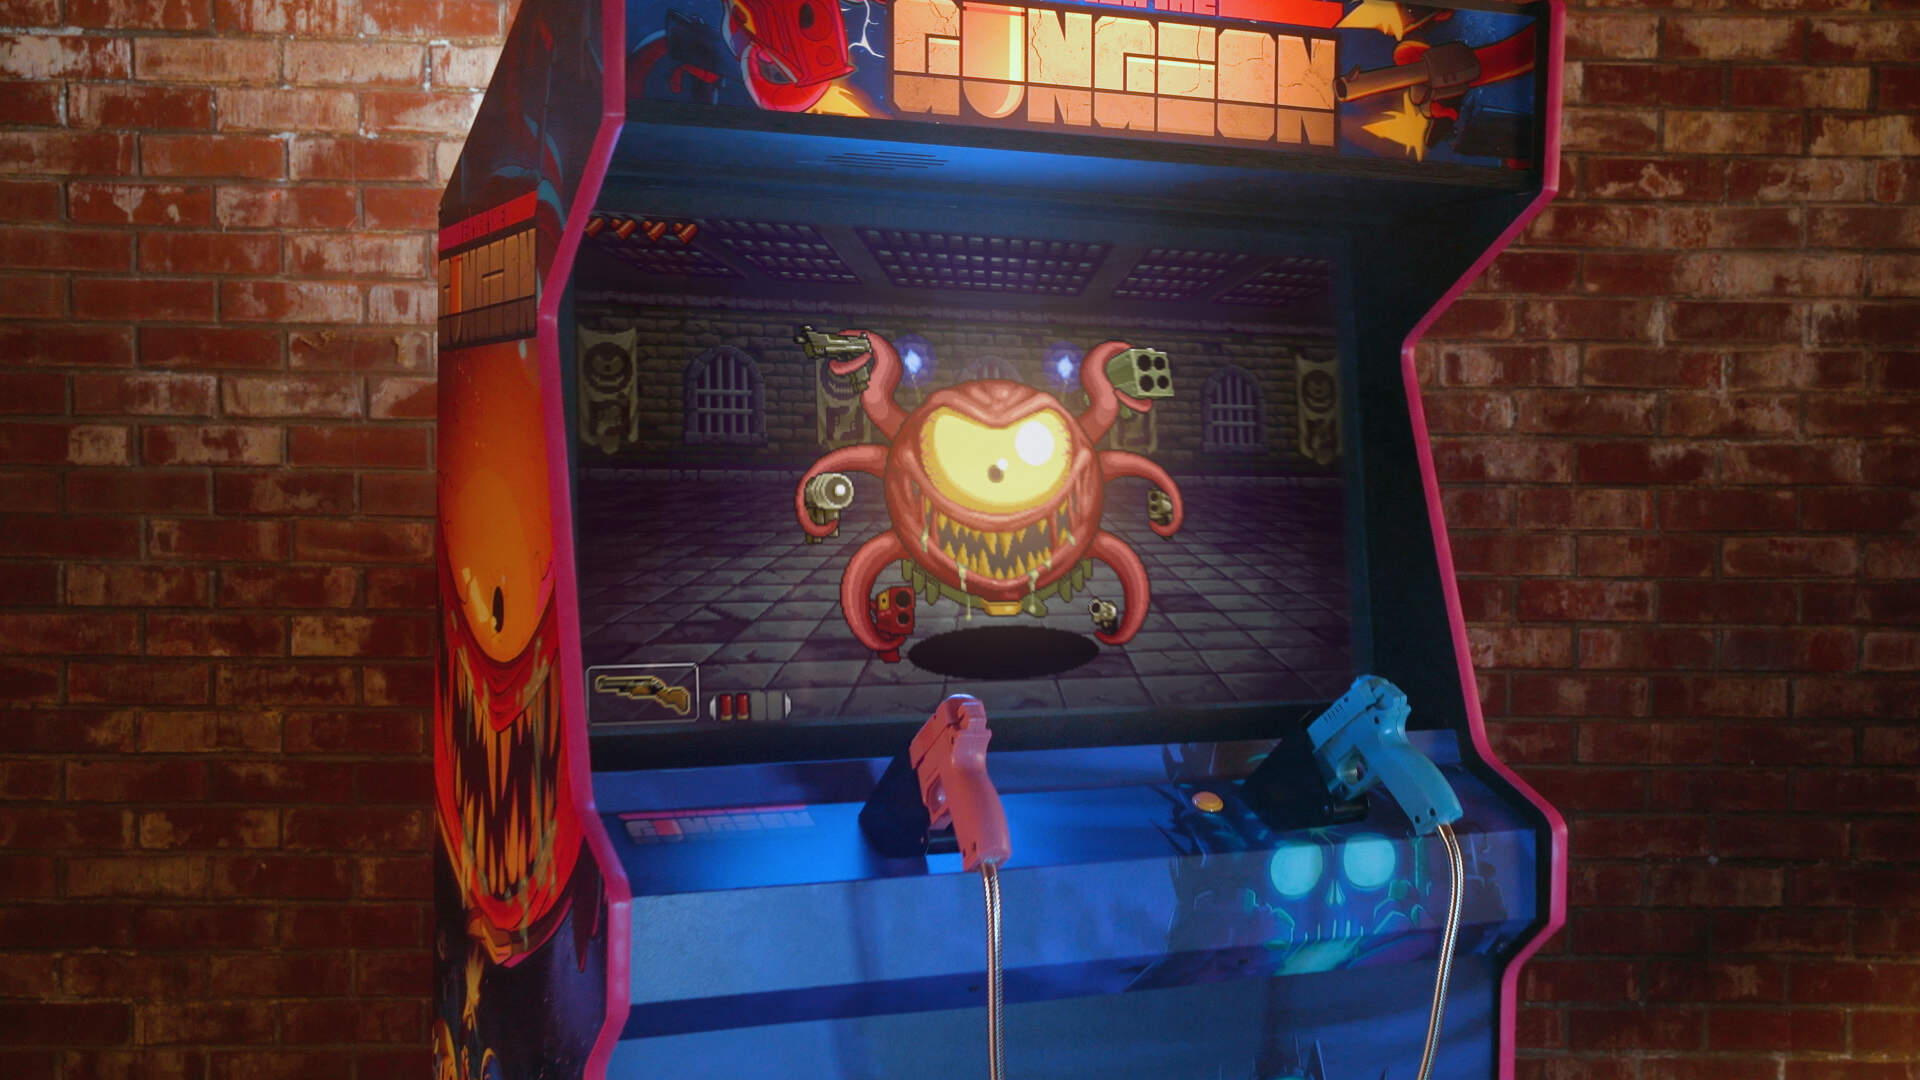 House of the Gundead Fits the Chaos of Enter the Gungeon in an Arcade Cabinet